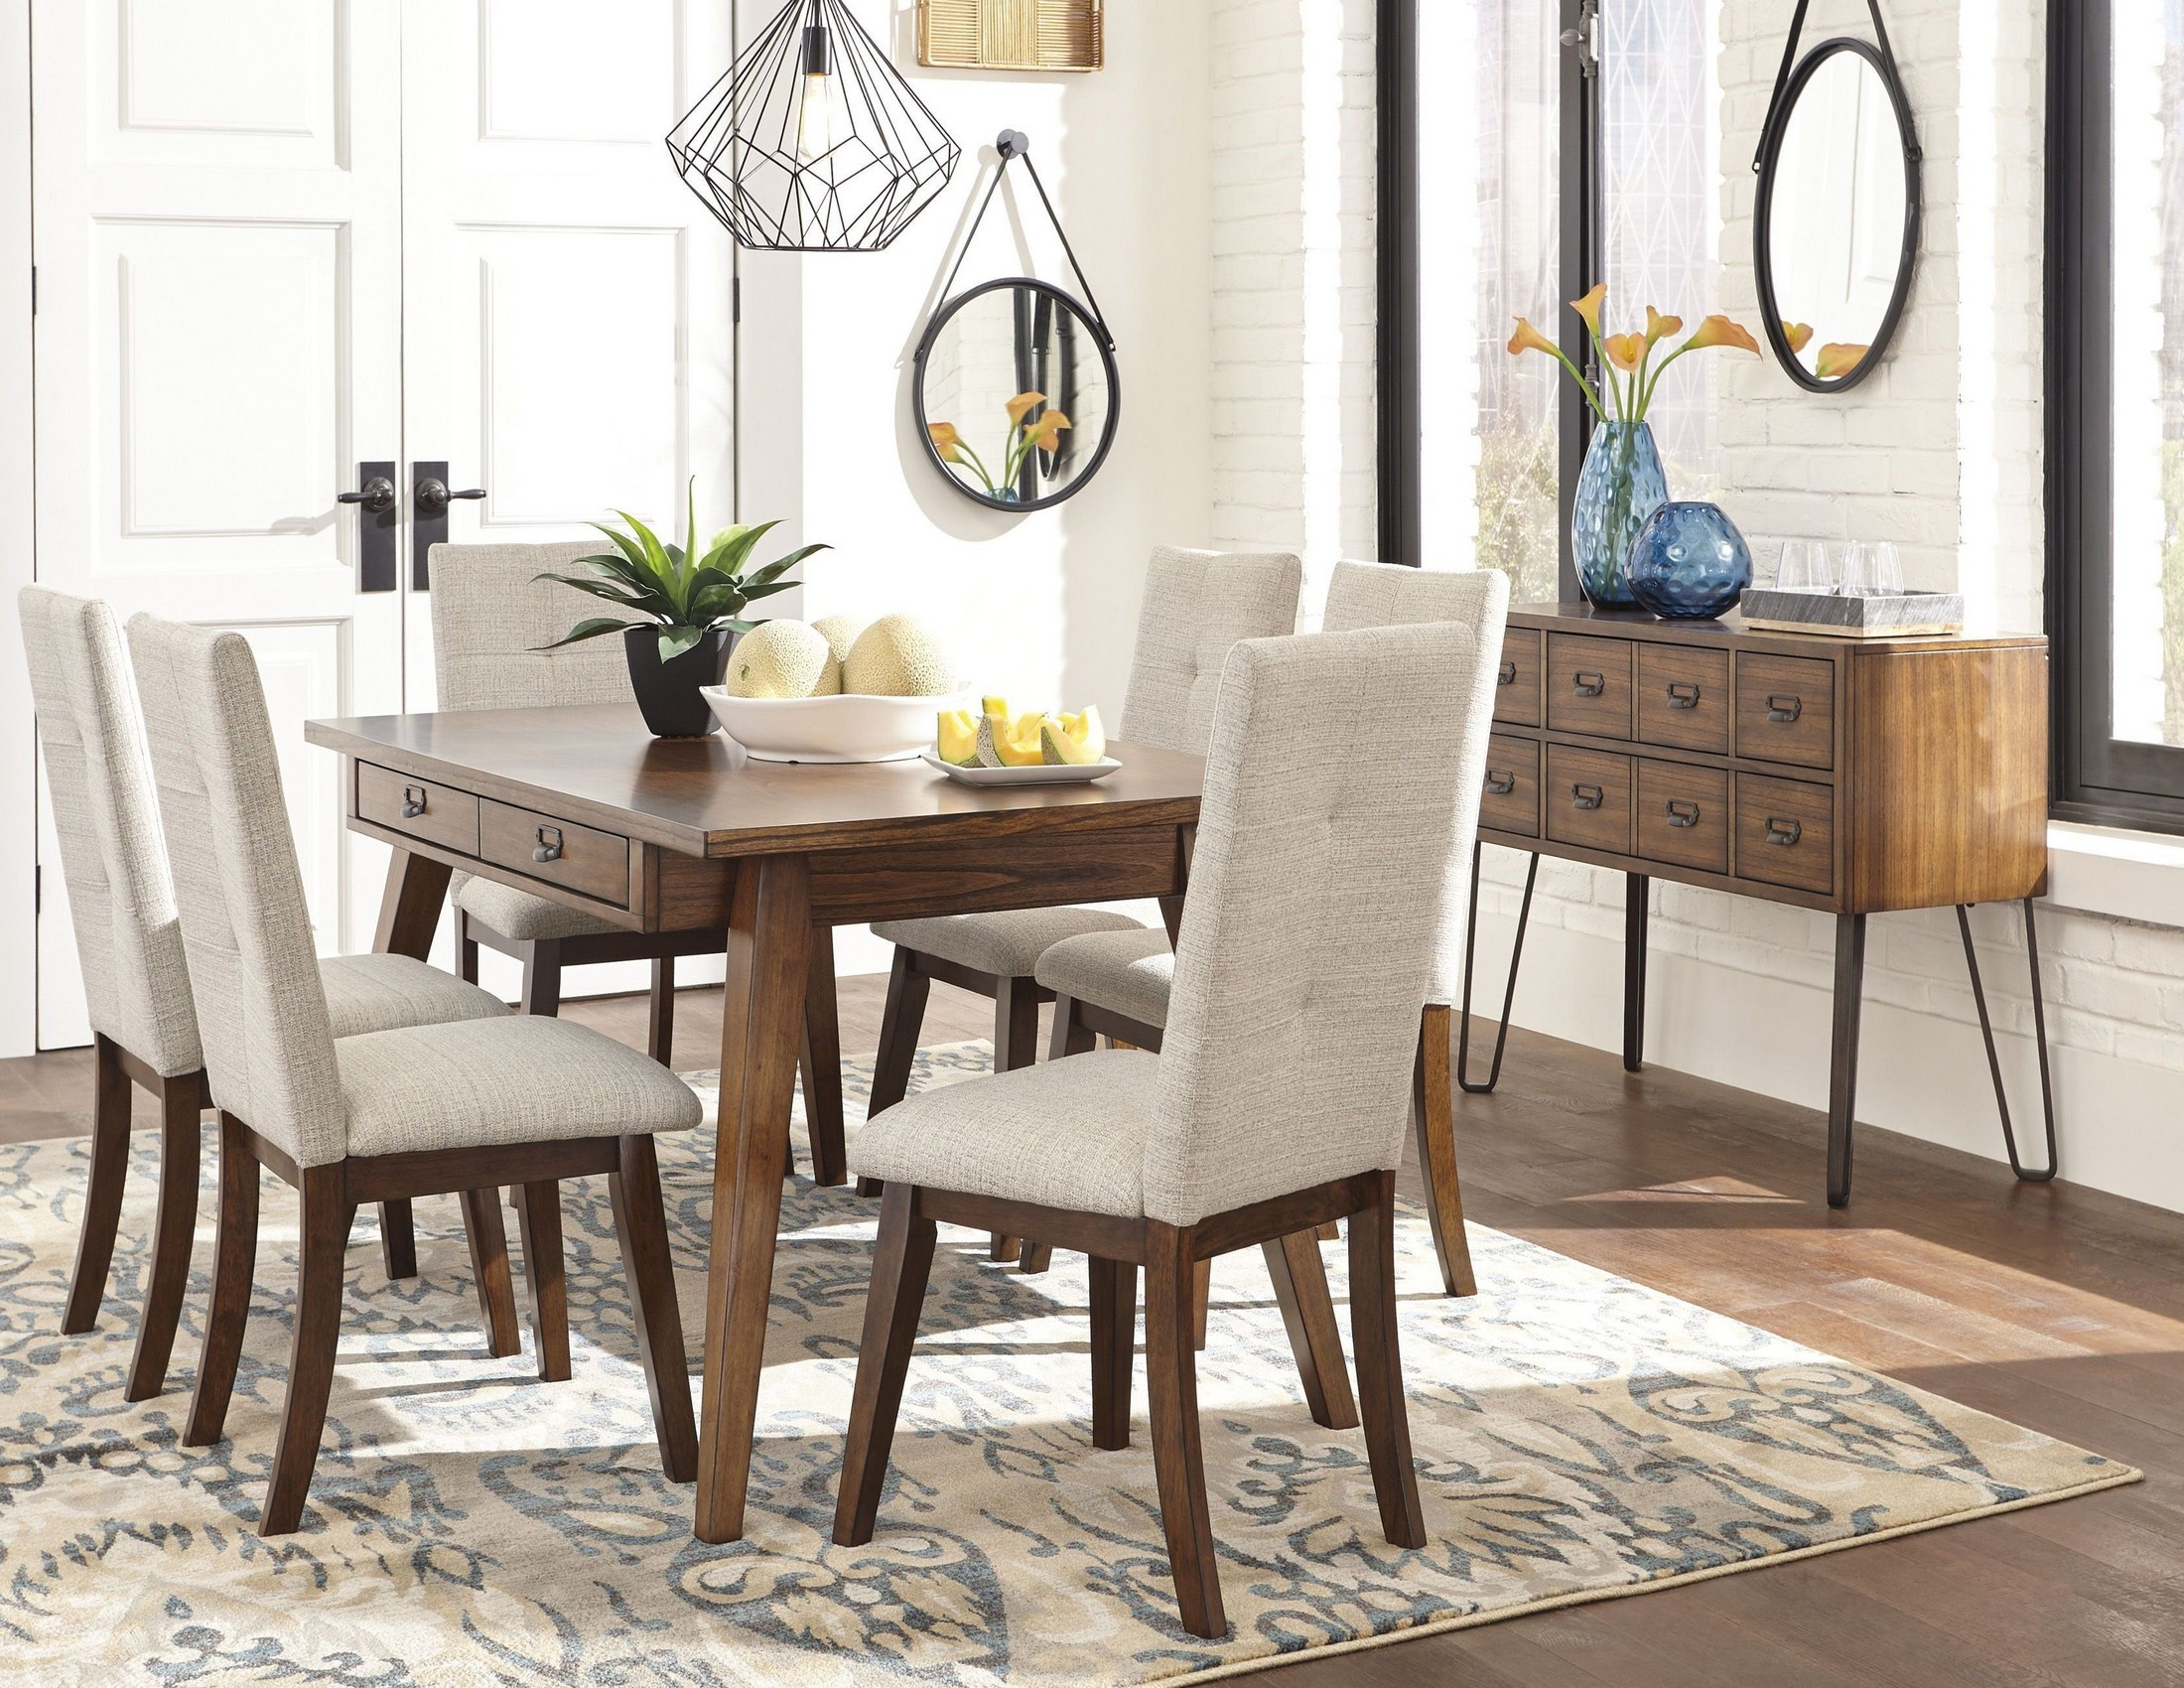 2 Tone Dining Room Sets Of Centiar Two Tone Brown Rectangular Dining Room Set From